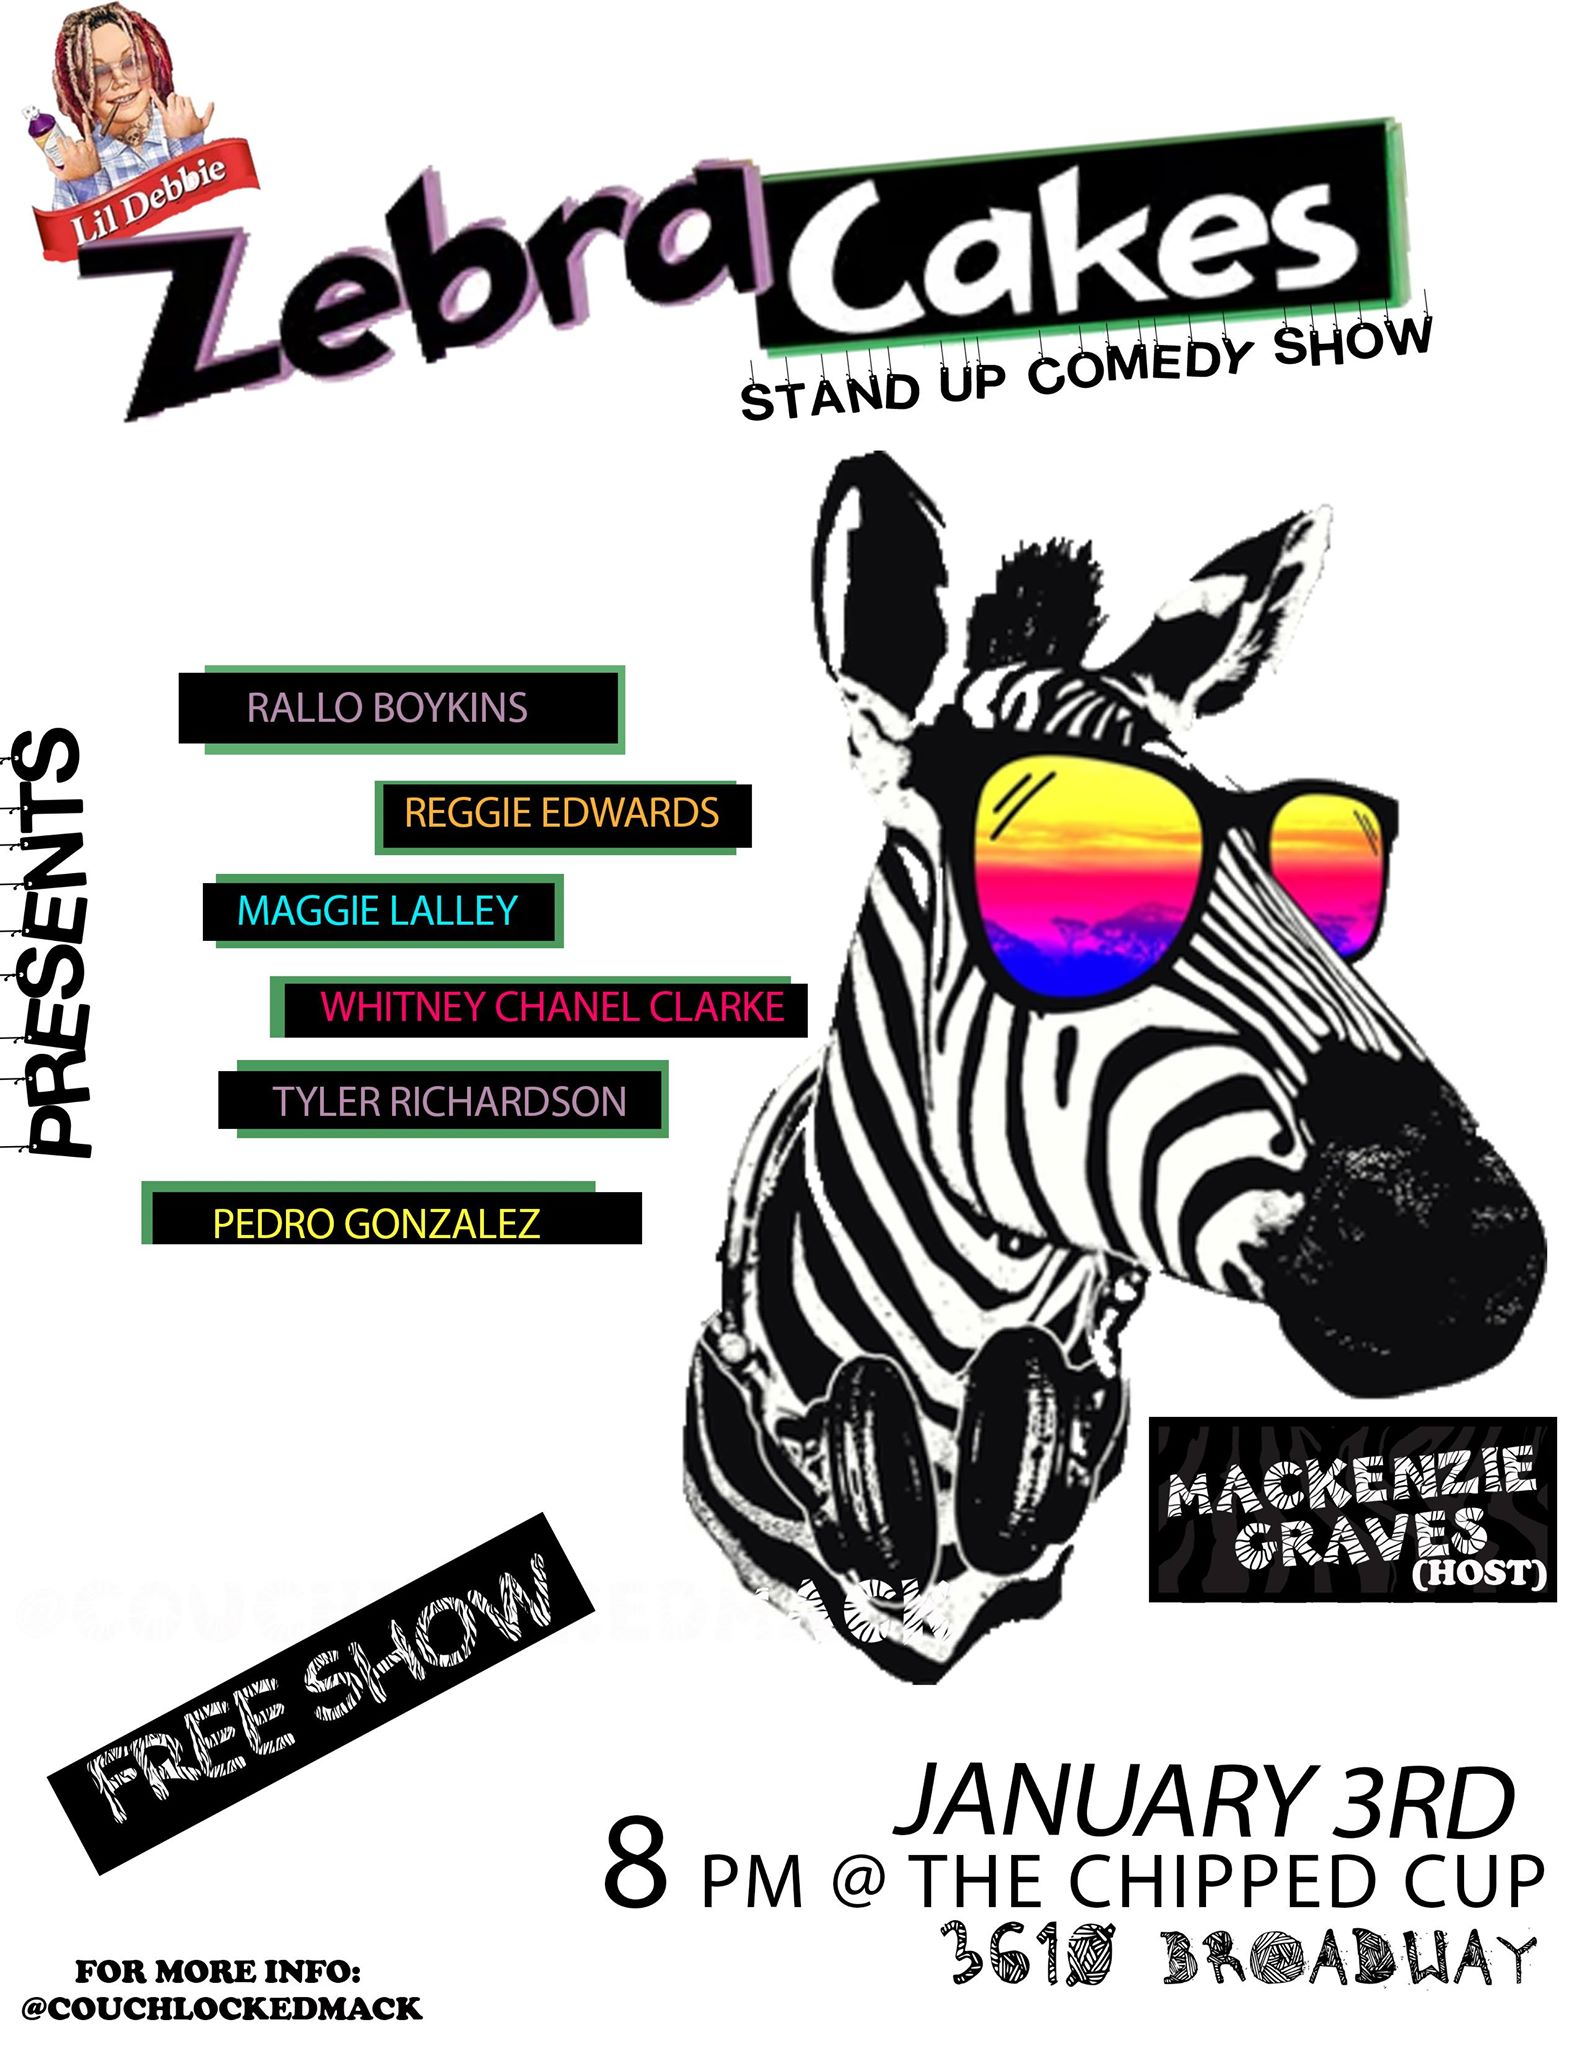 Zebra Cakes Thursday, Jan 3rd 8:oopm-9:3opm The Chipped Cup | 3610 Broadway | New York, NY 10012